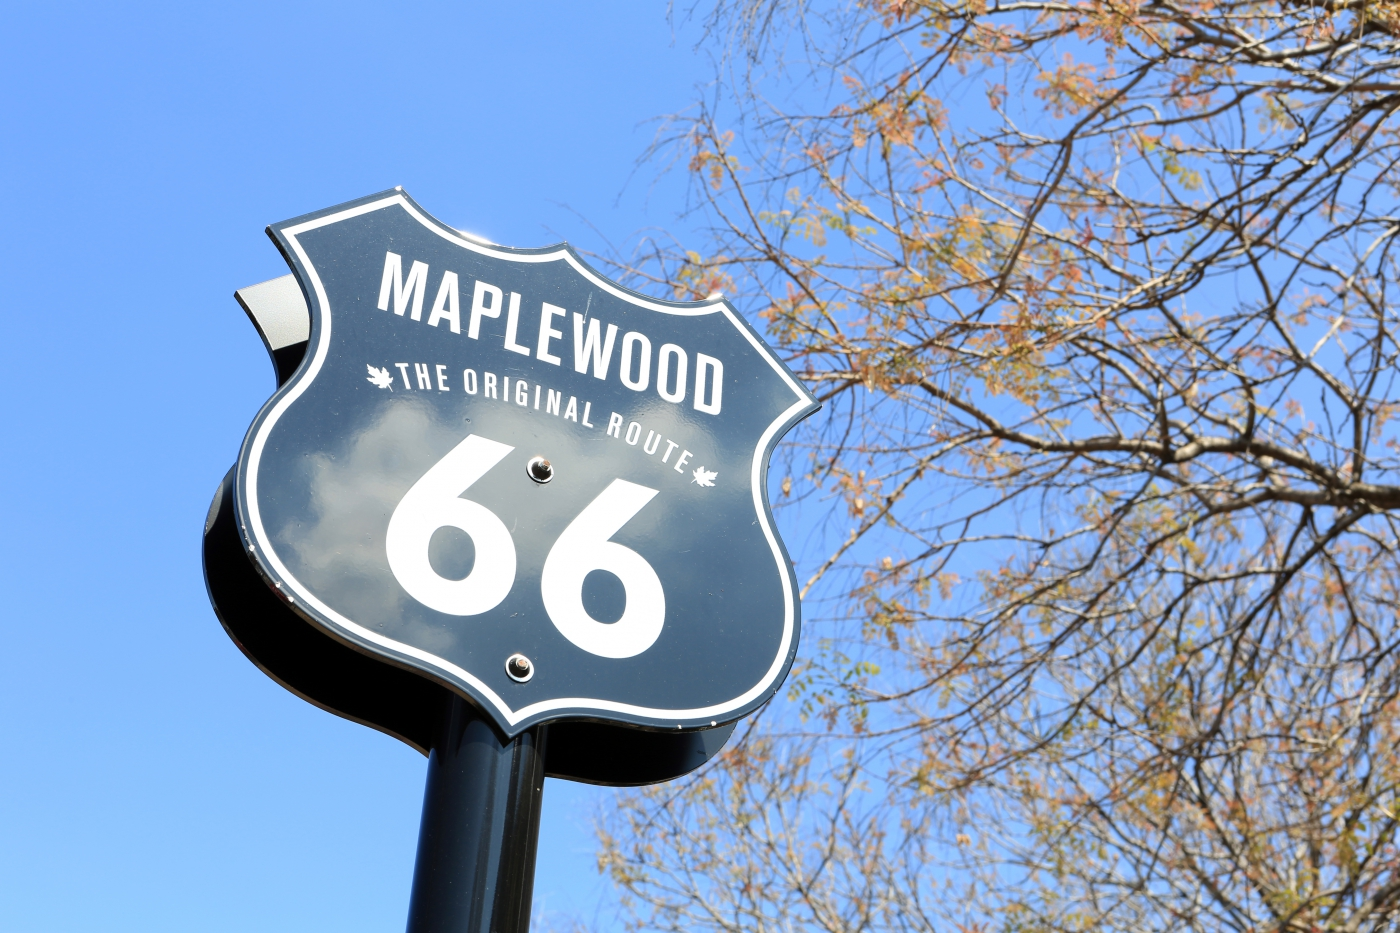 Route 66 plaque in St. Louis' Maplewood neighborhood.